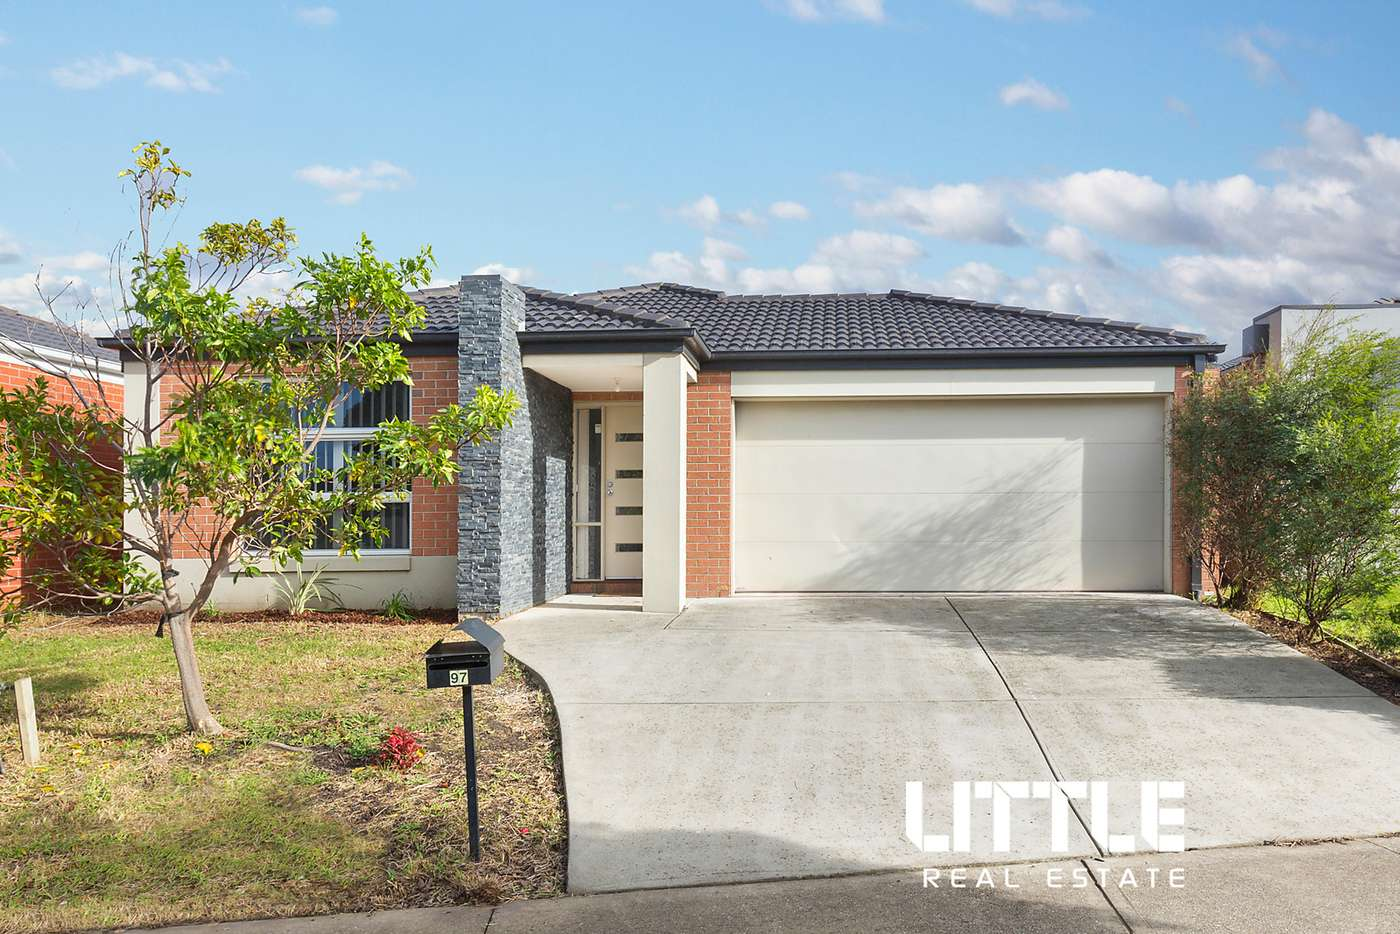 Main view of Homely house listing, 97 Henry Road, Pakenham VIC 3810